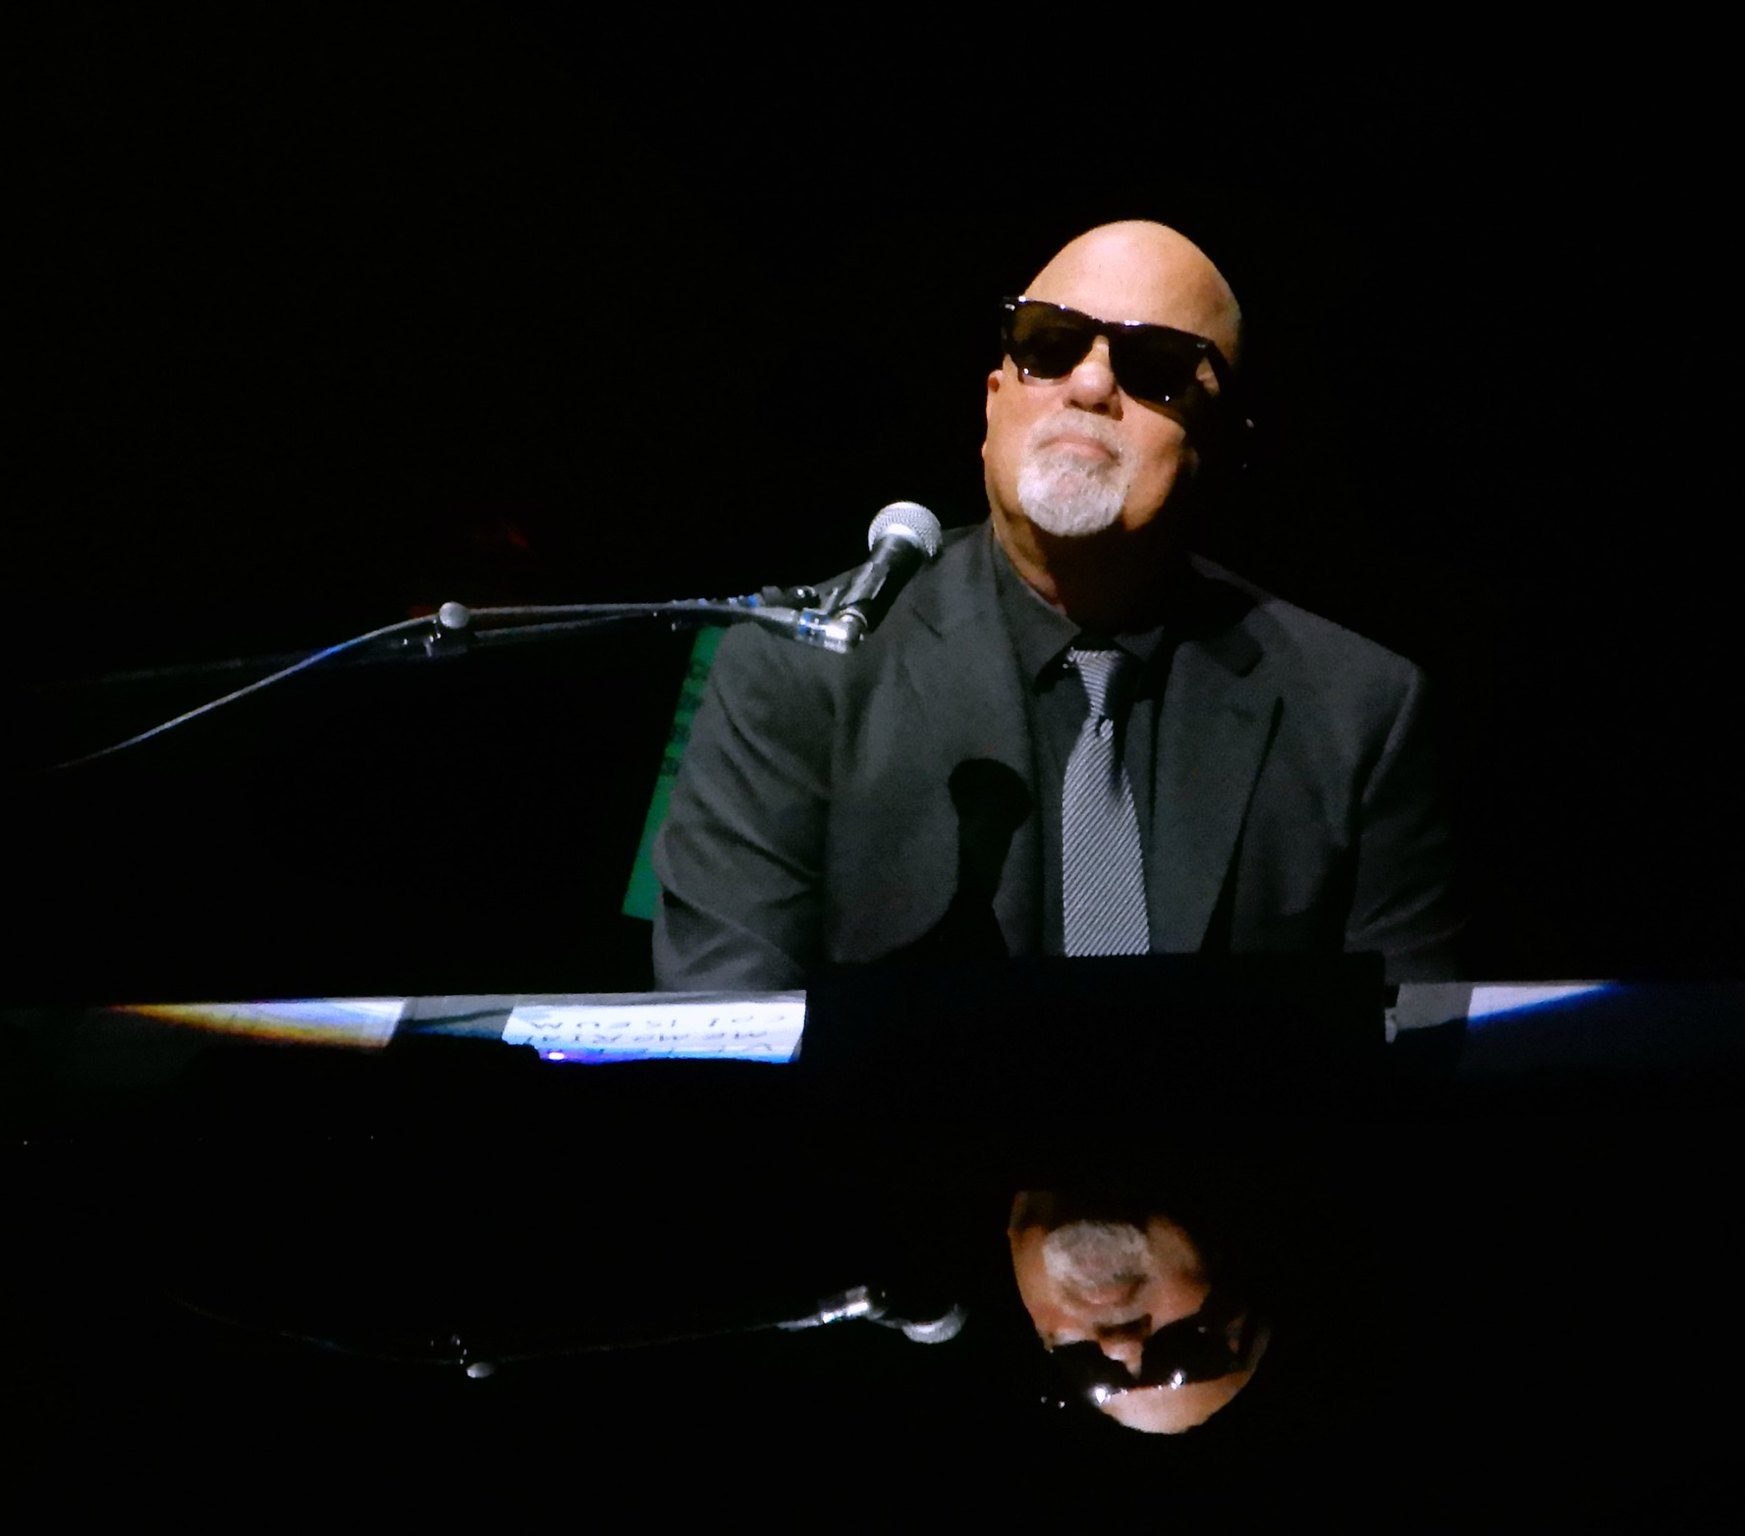 33063331113 bc5714d266 k e1621415711206 20 Things You Probably Didn't Know About Billy Joel